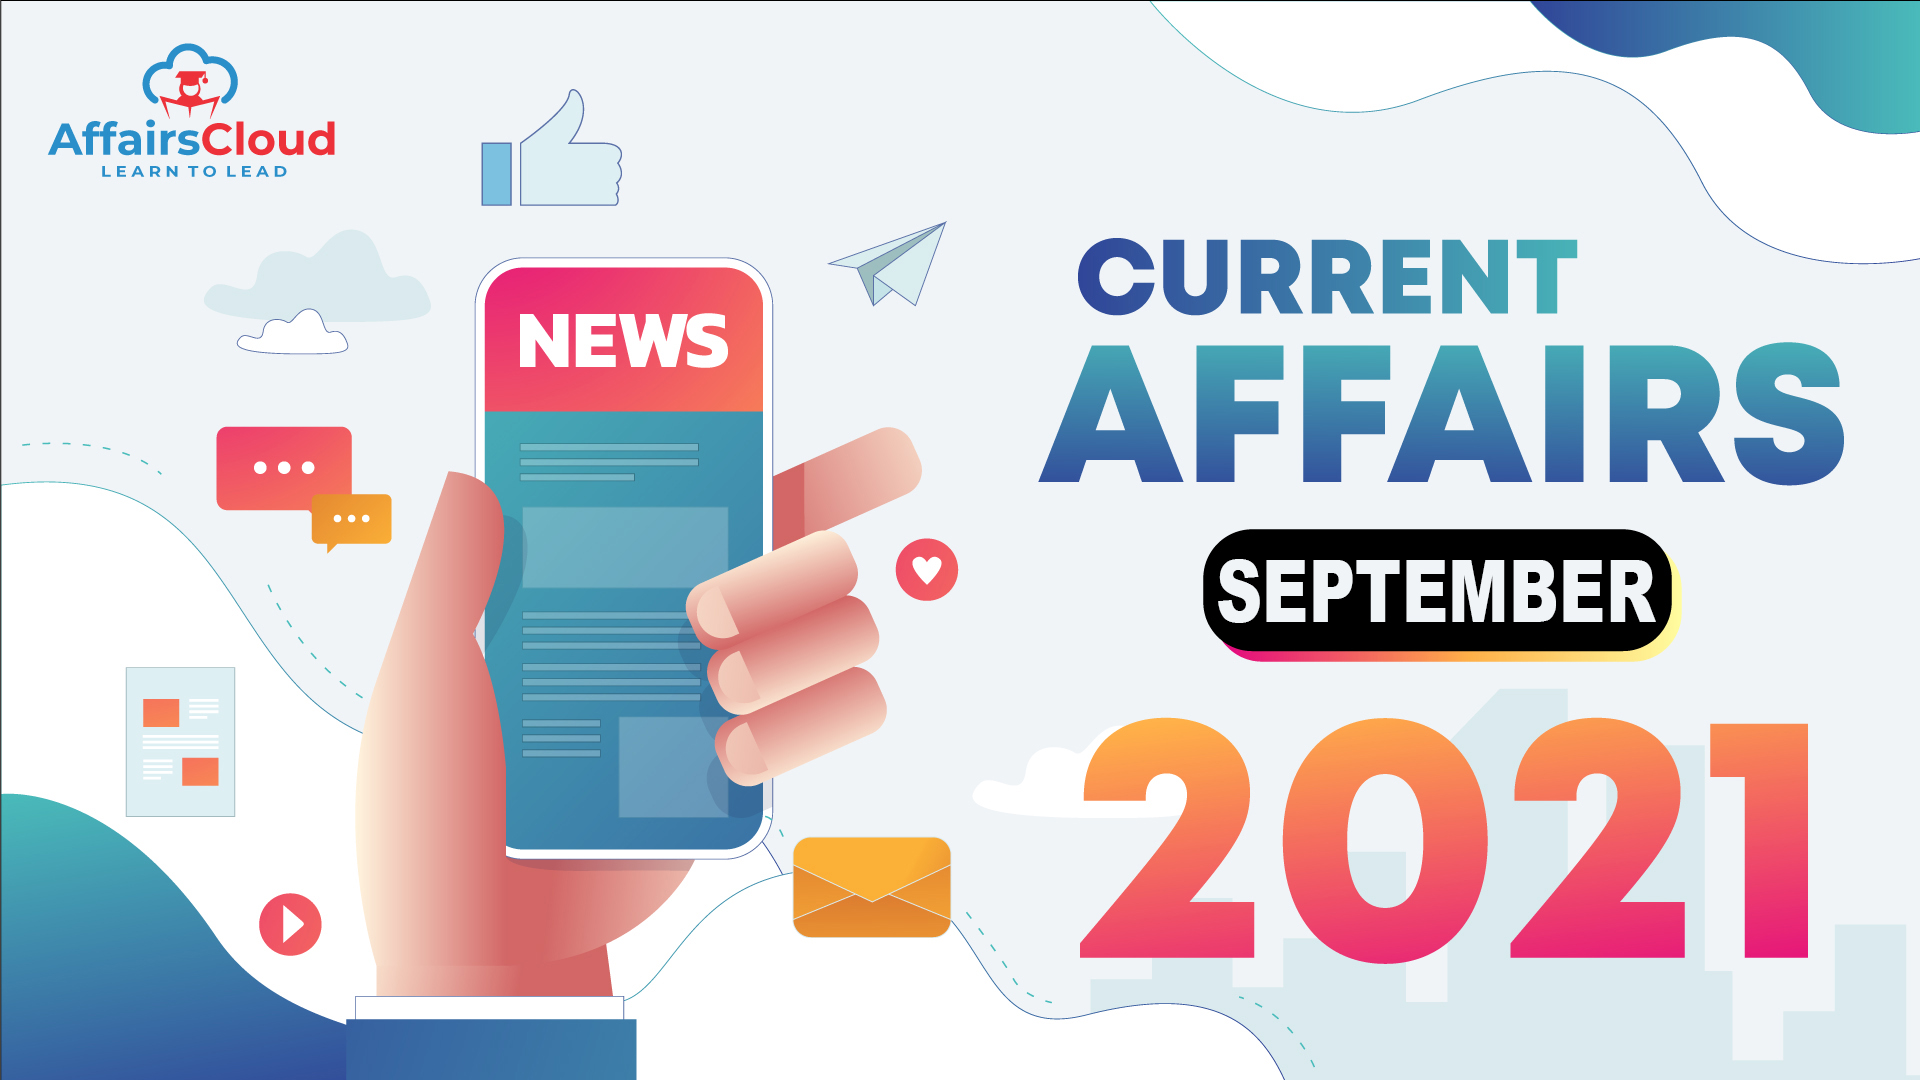 CURRENT-AFFAIRS-MONTHY September-2021